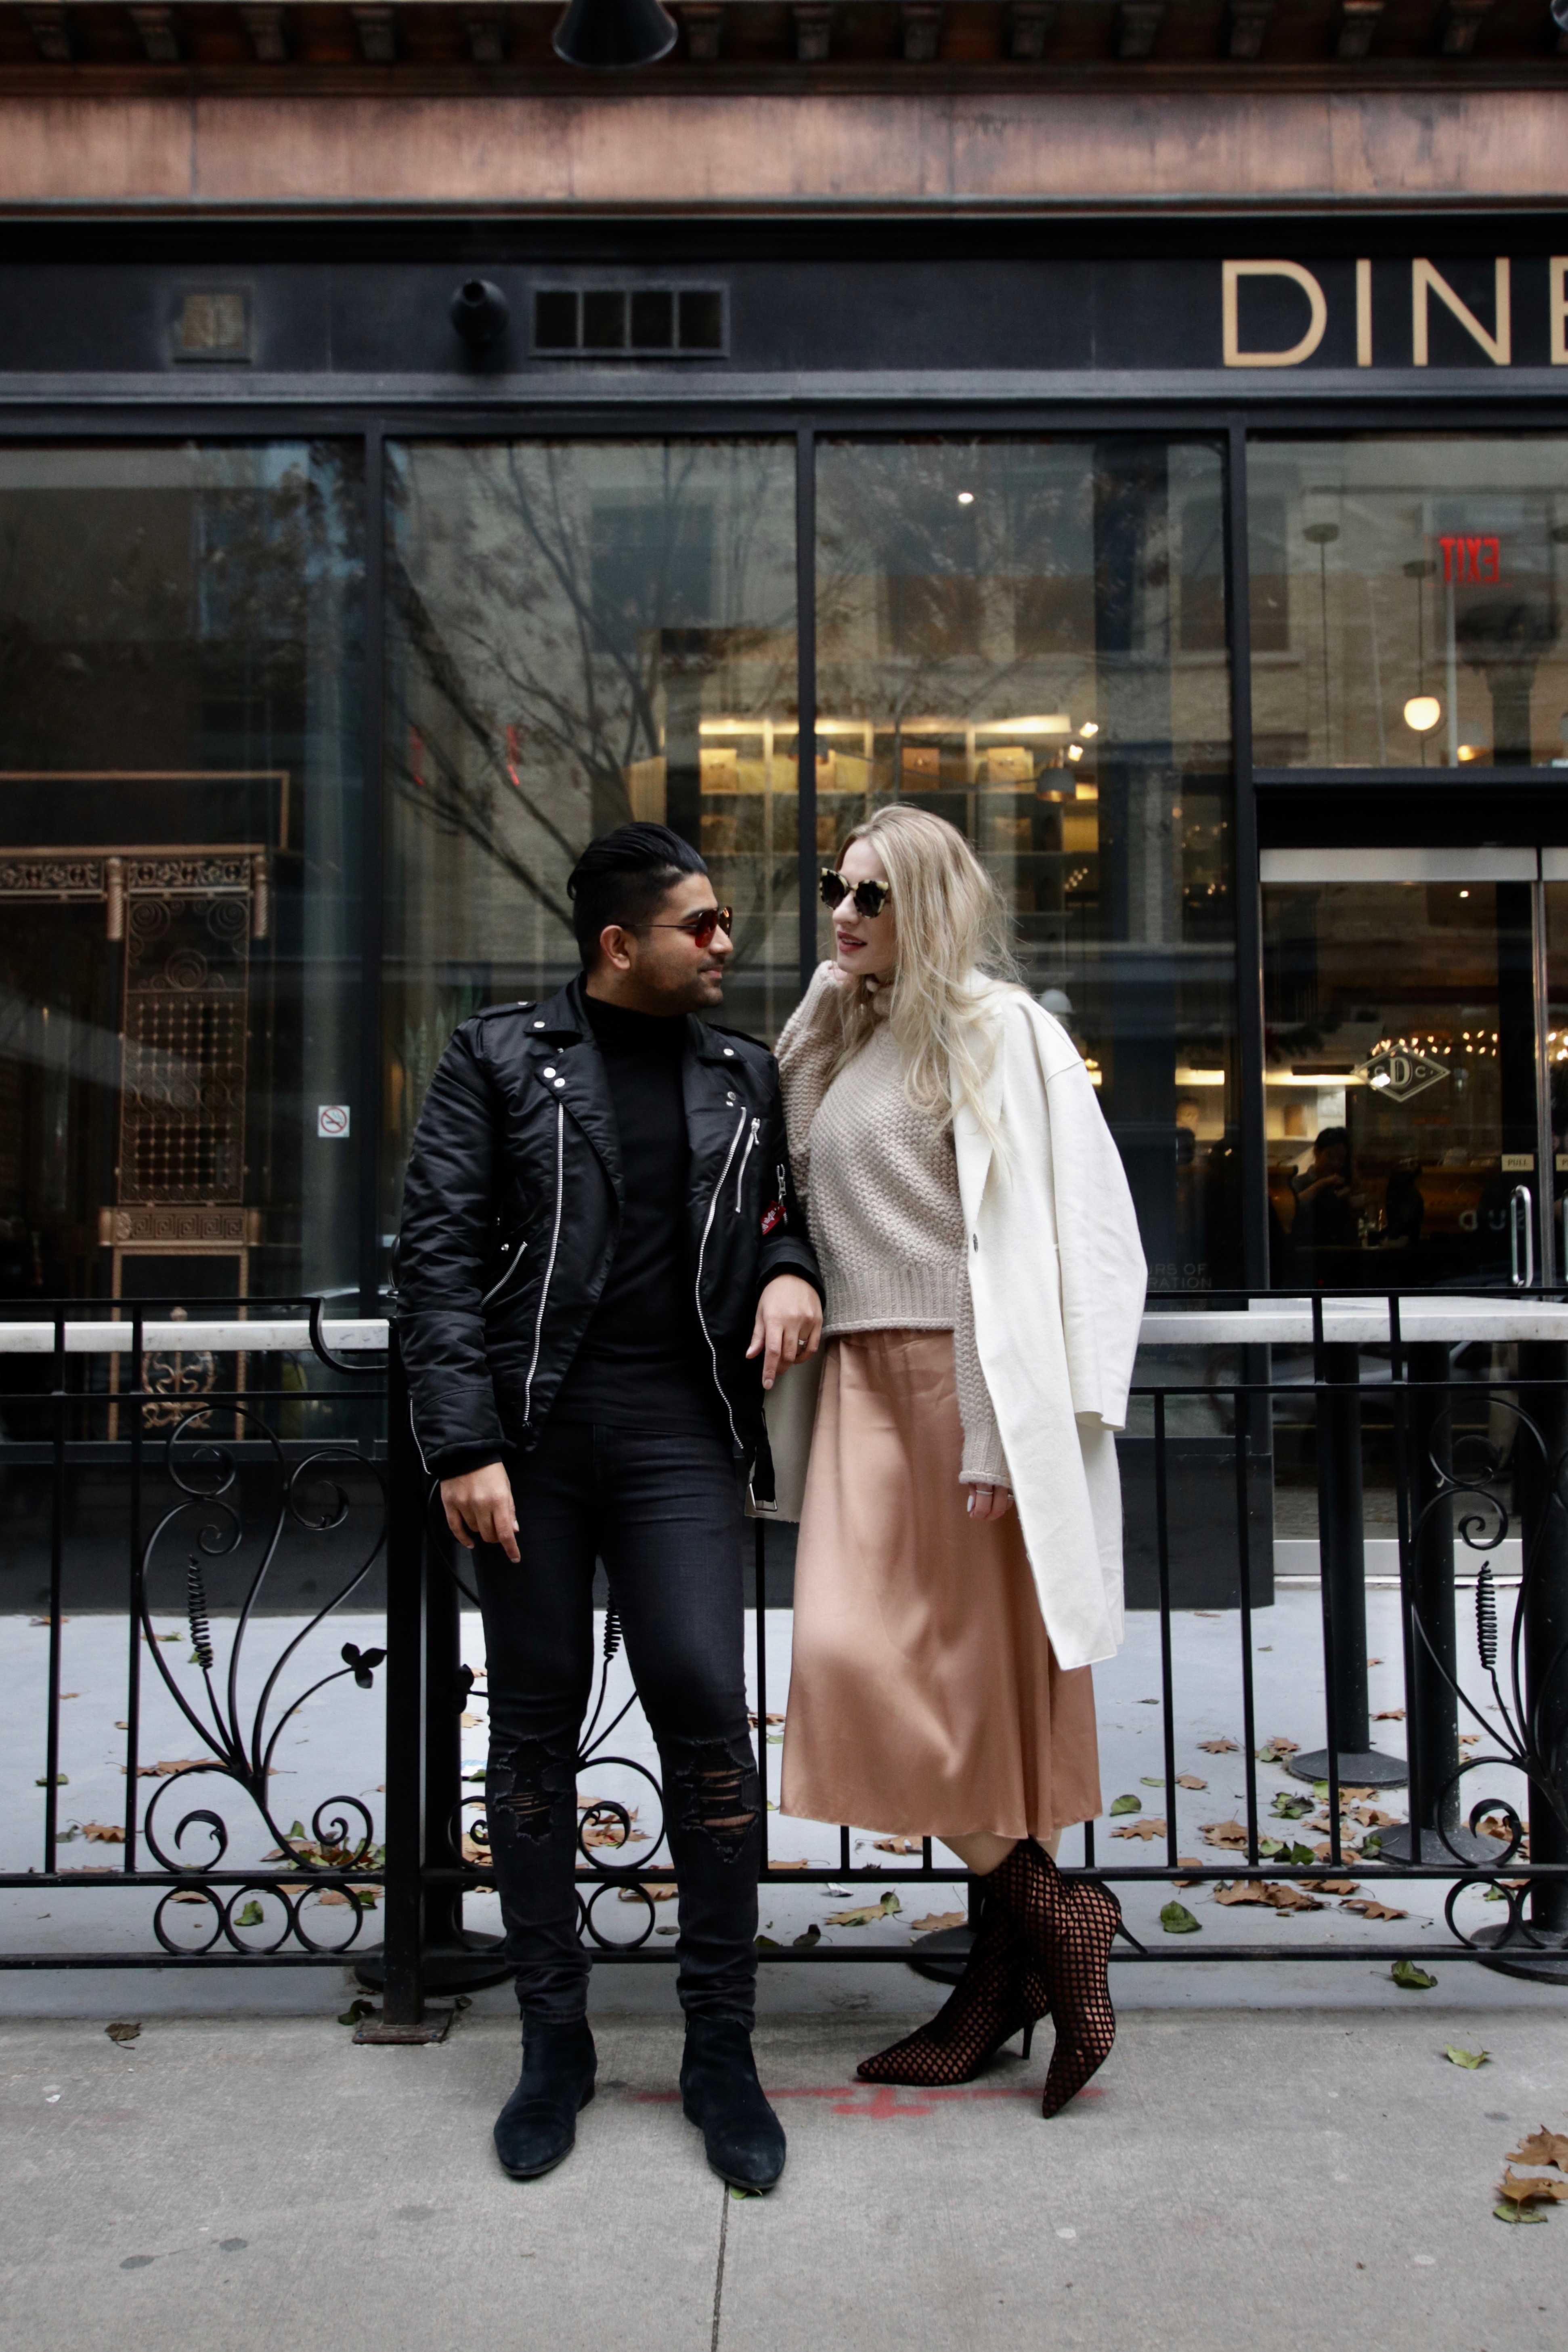 ENDOXIST | Menswear Blogger | Travel Blogger | 2016 Year Review